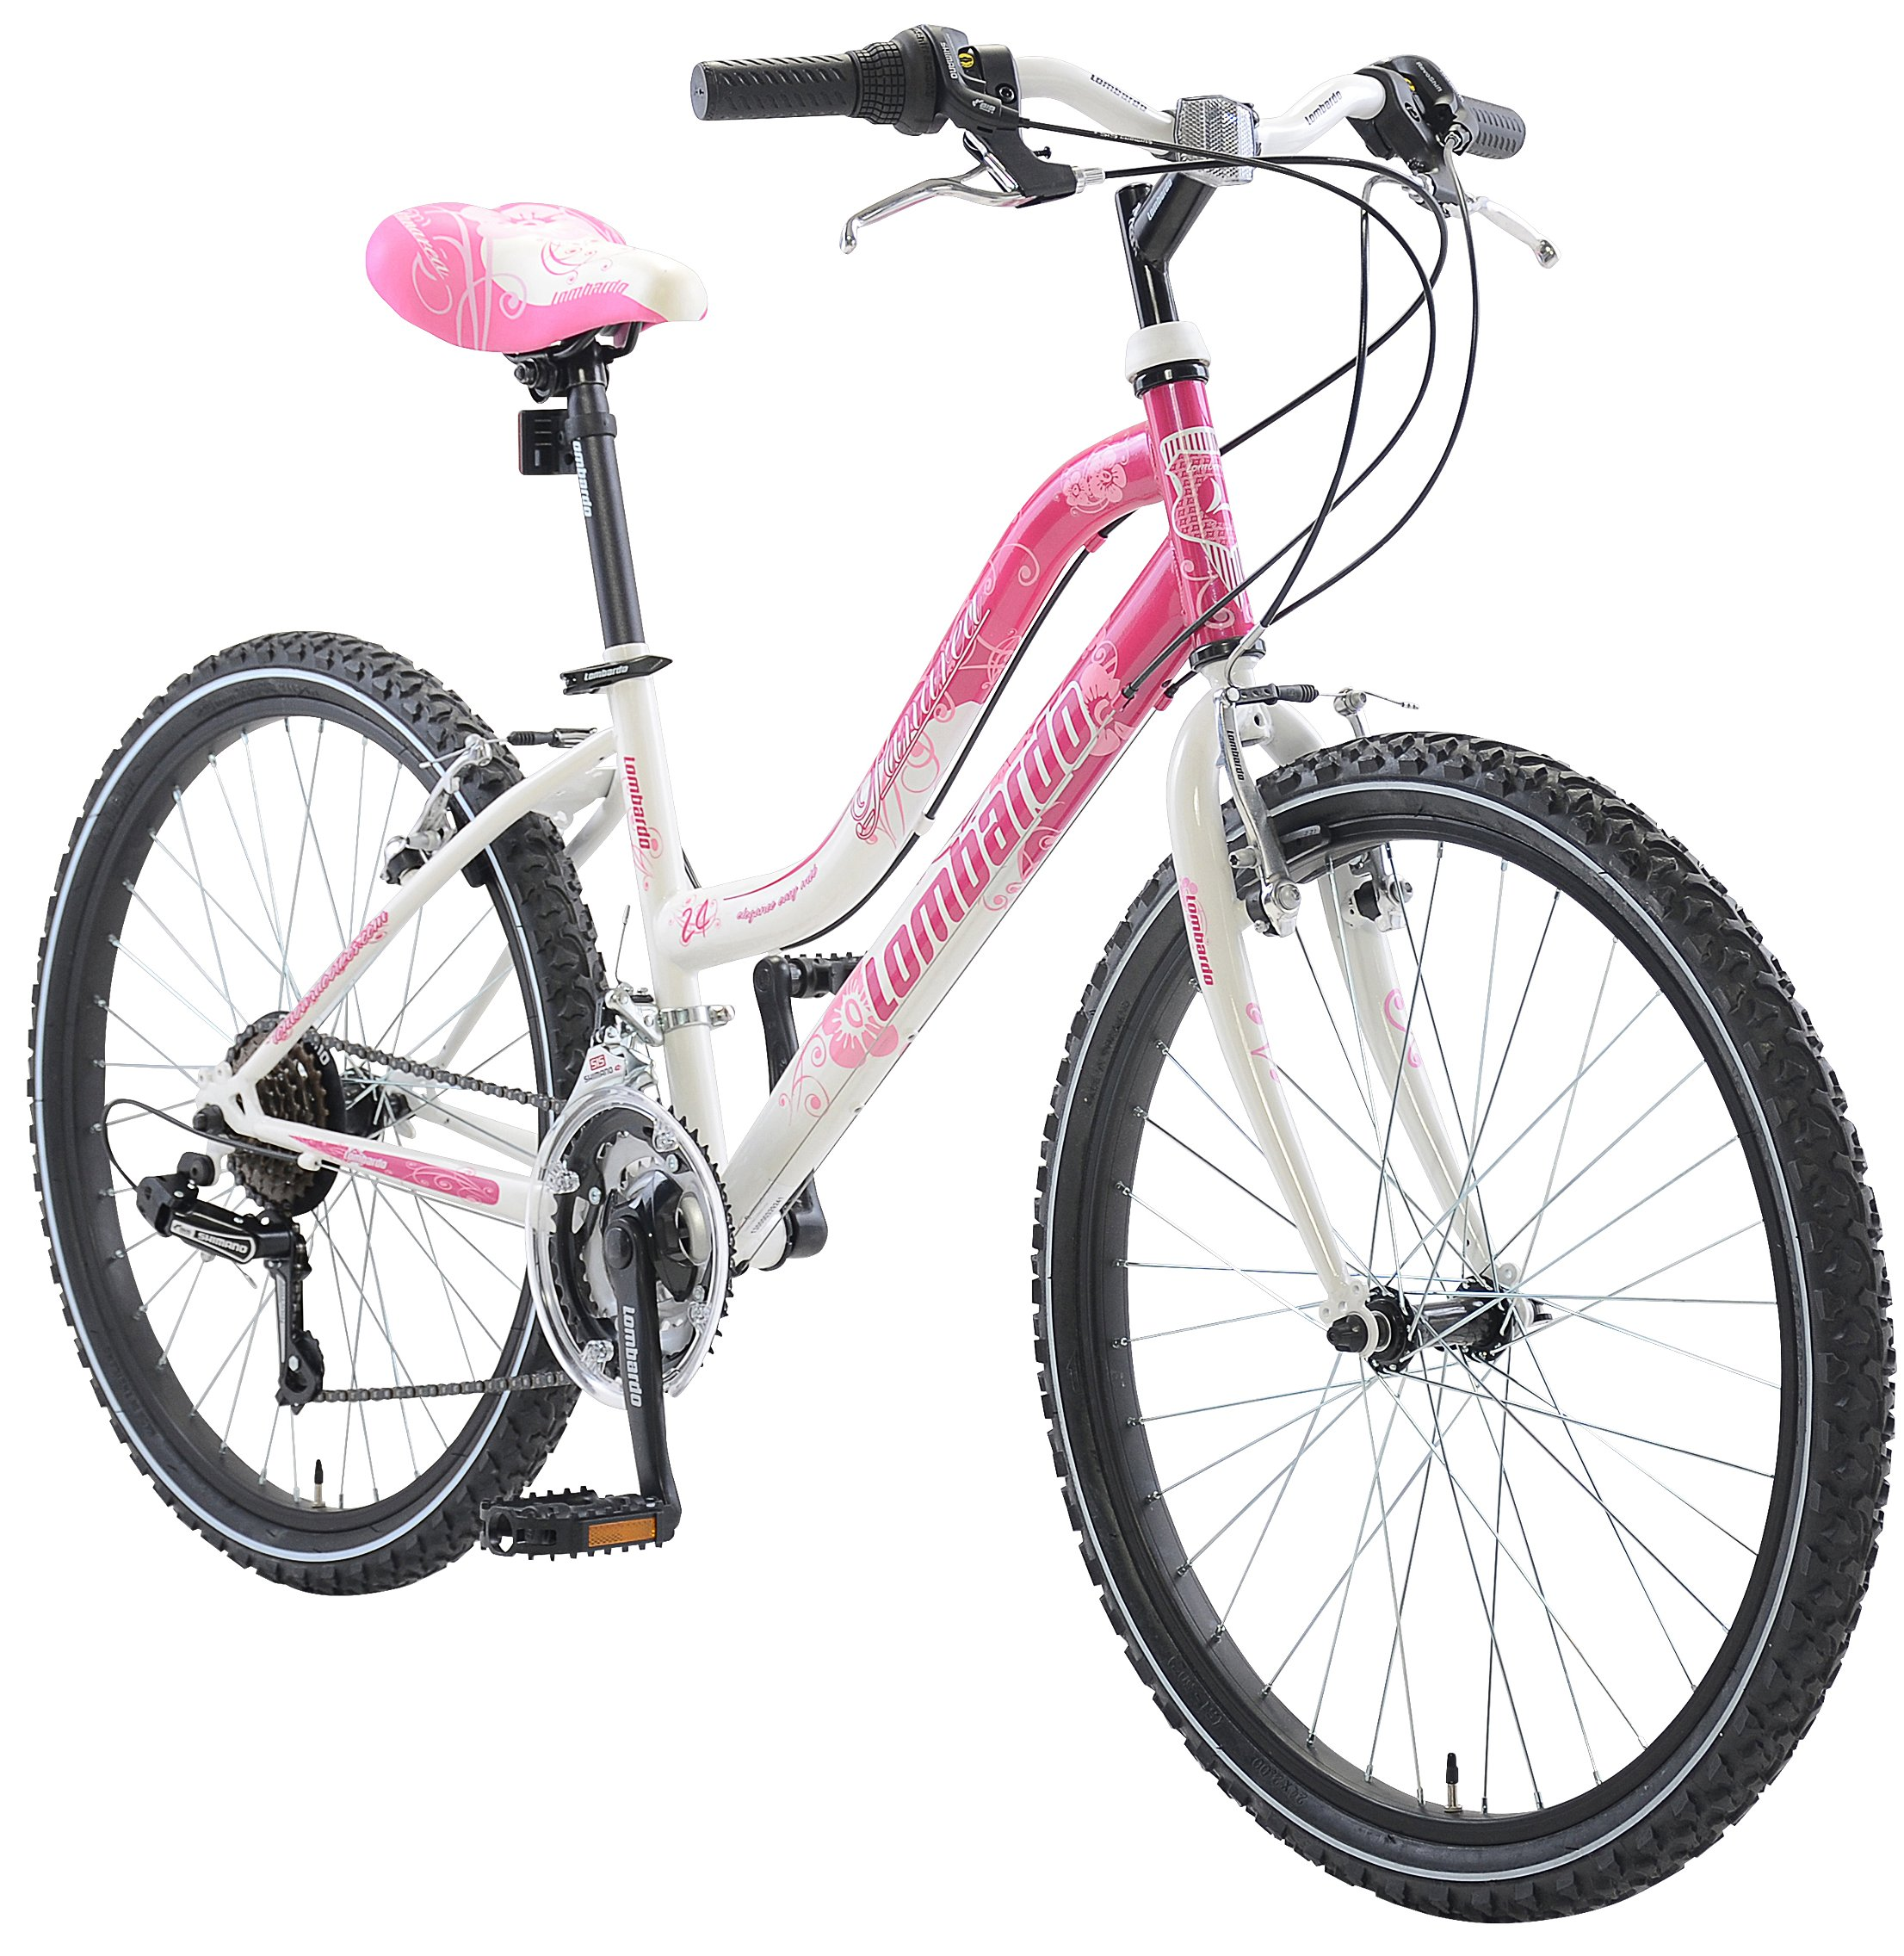 Lombardo Panarea Womans 24 18 Speed Mountain Bike Made in Italy